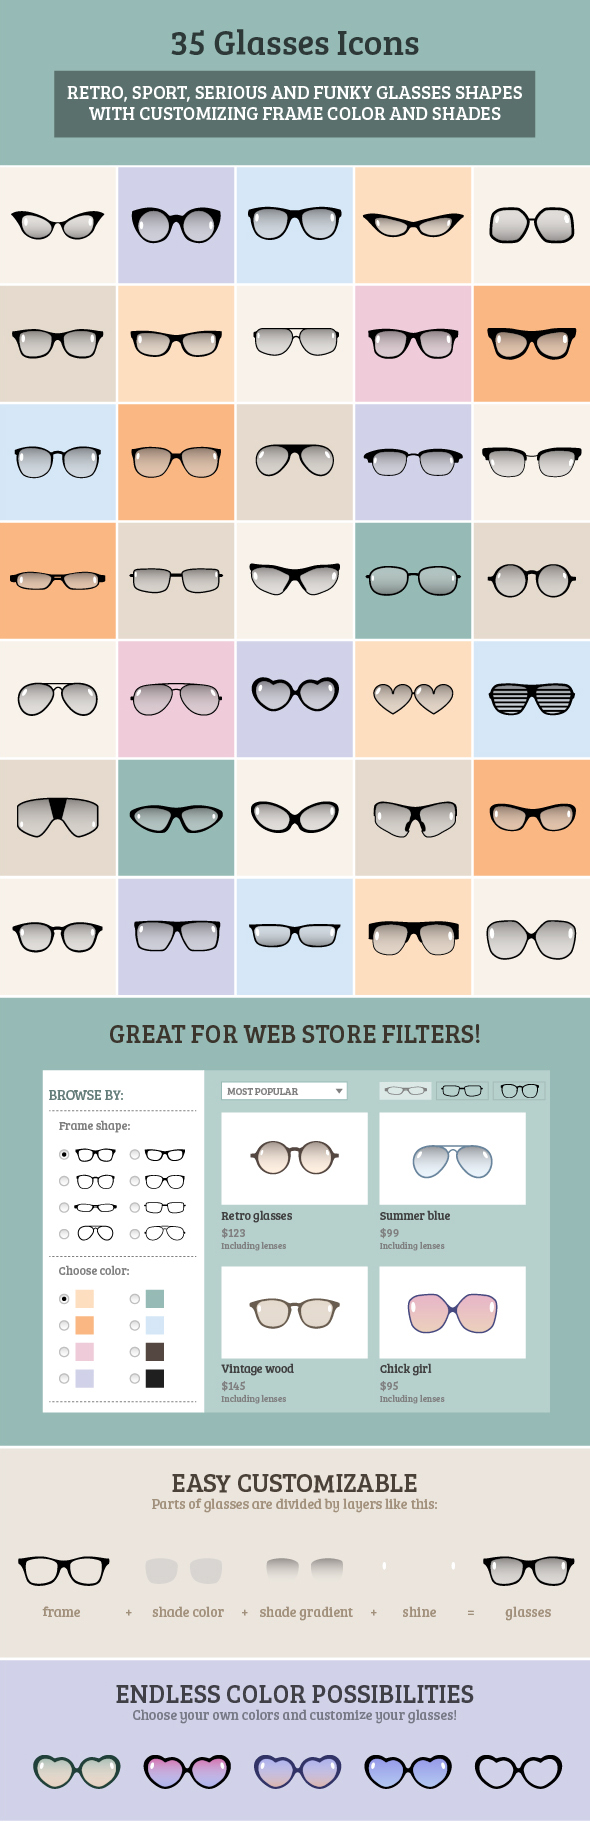 35 Glasses icons available for purchase via Envato